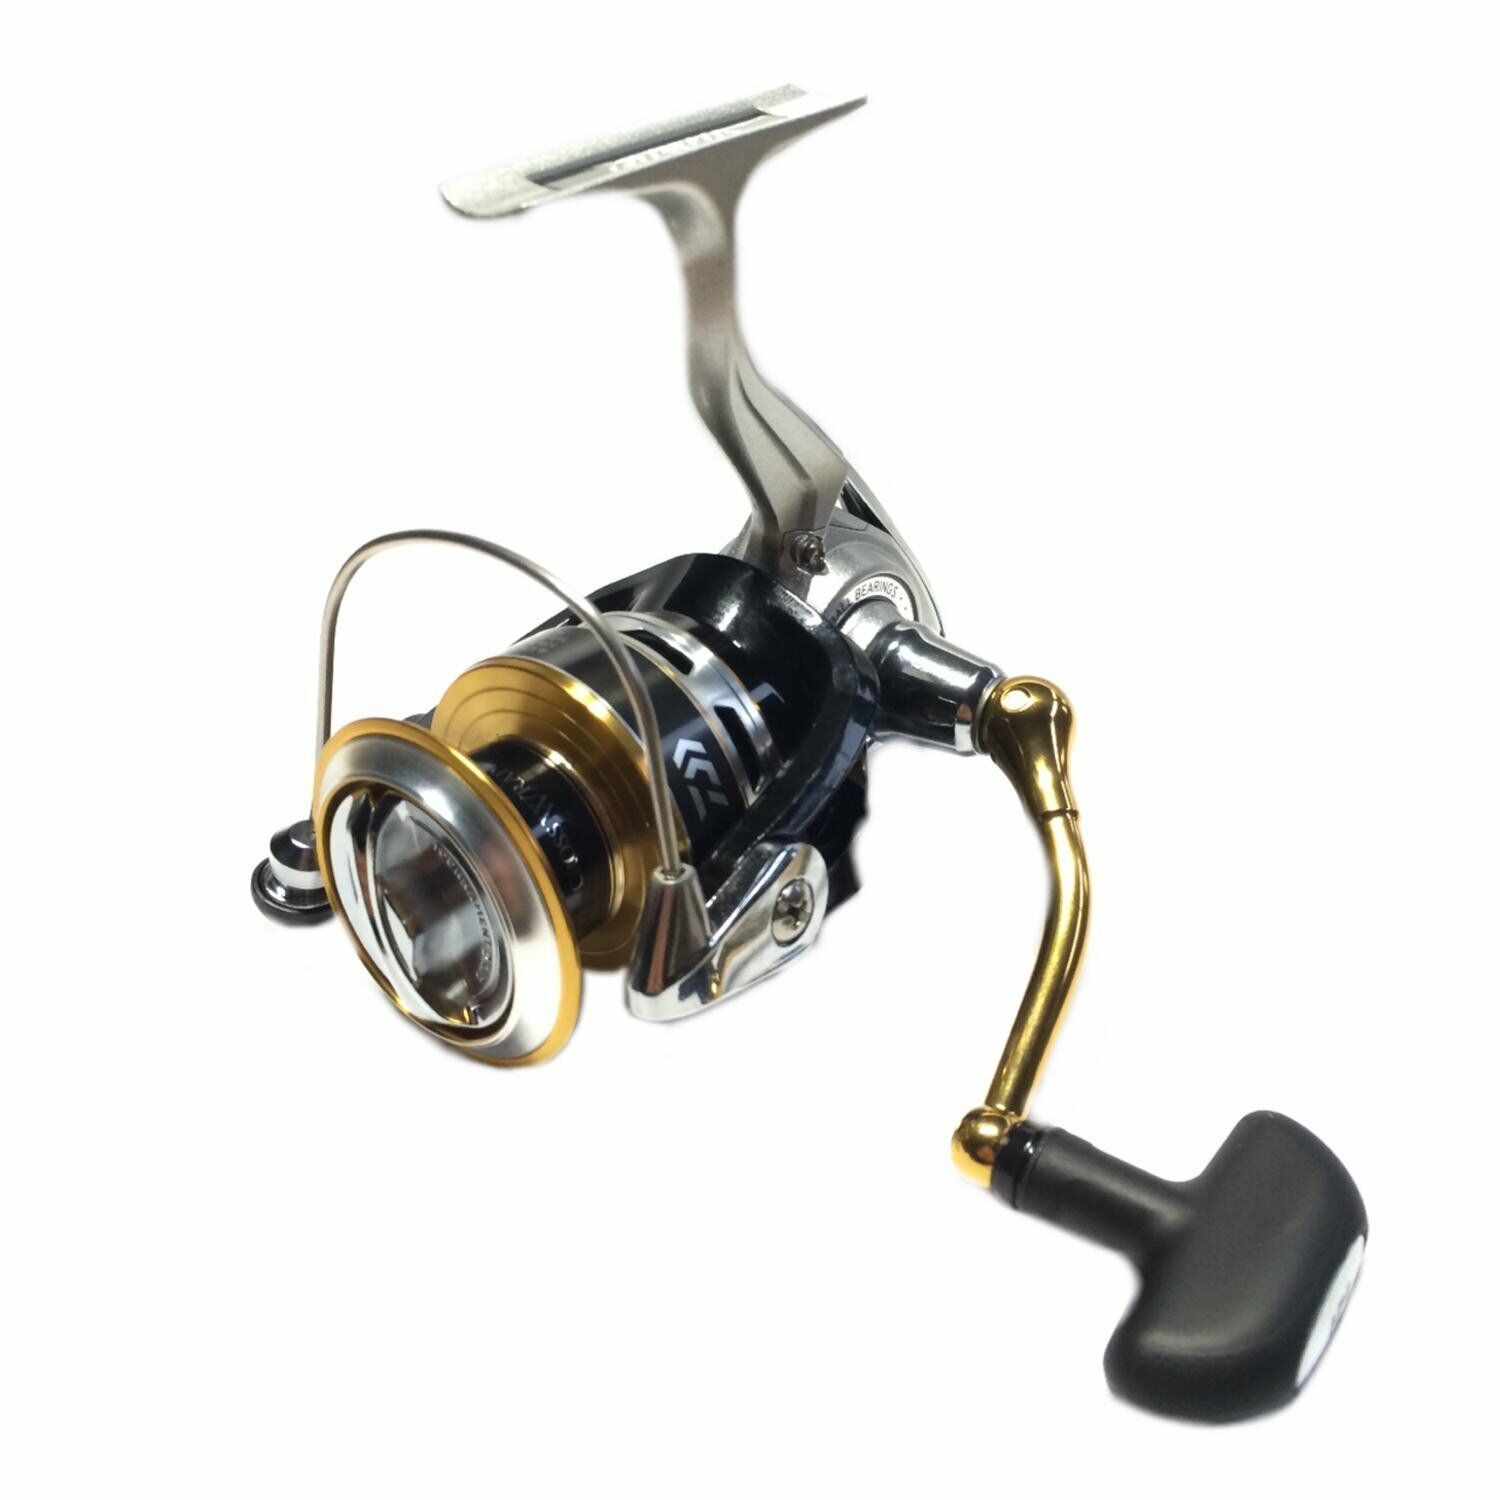 Daiwa 16 CREST 2500 Spinning Reels  brand on sale clearance